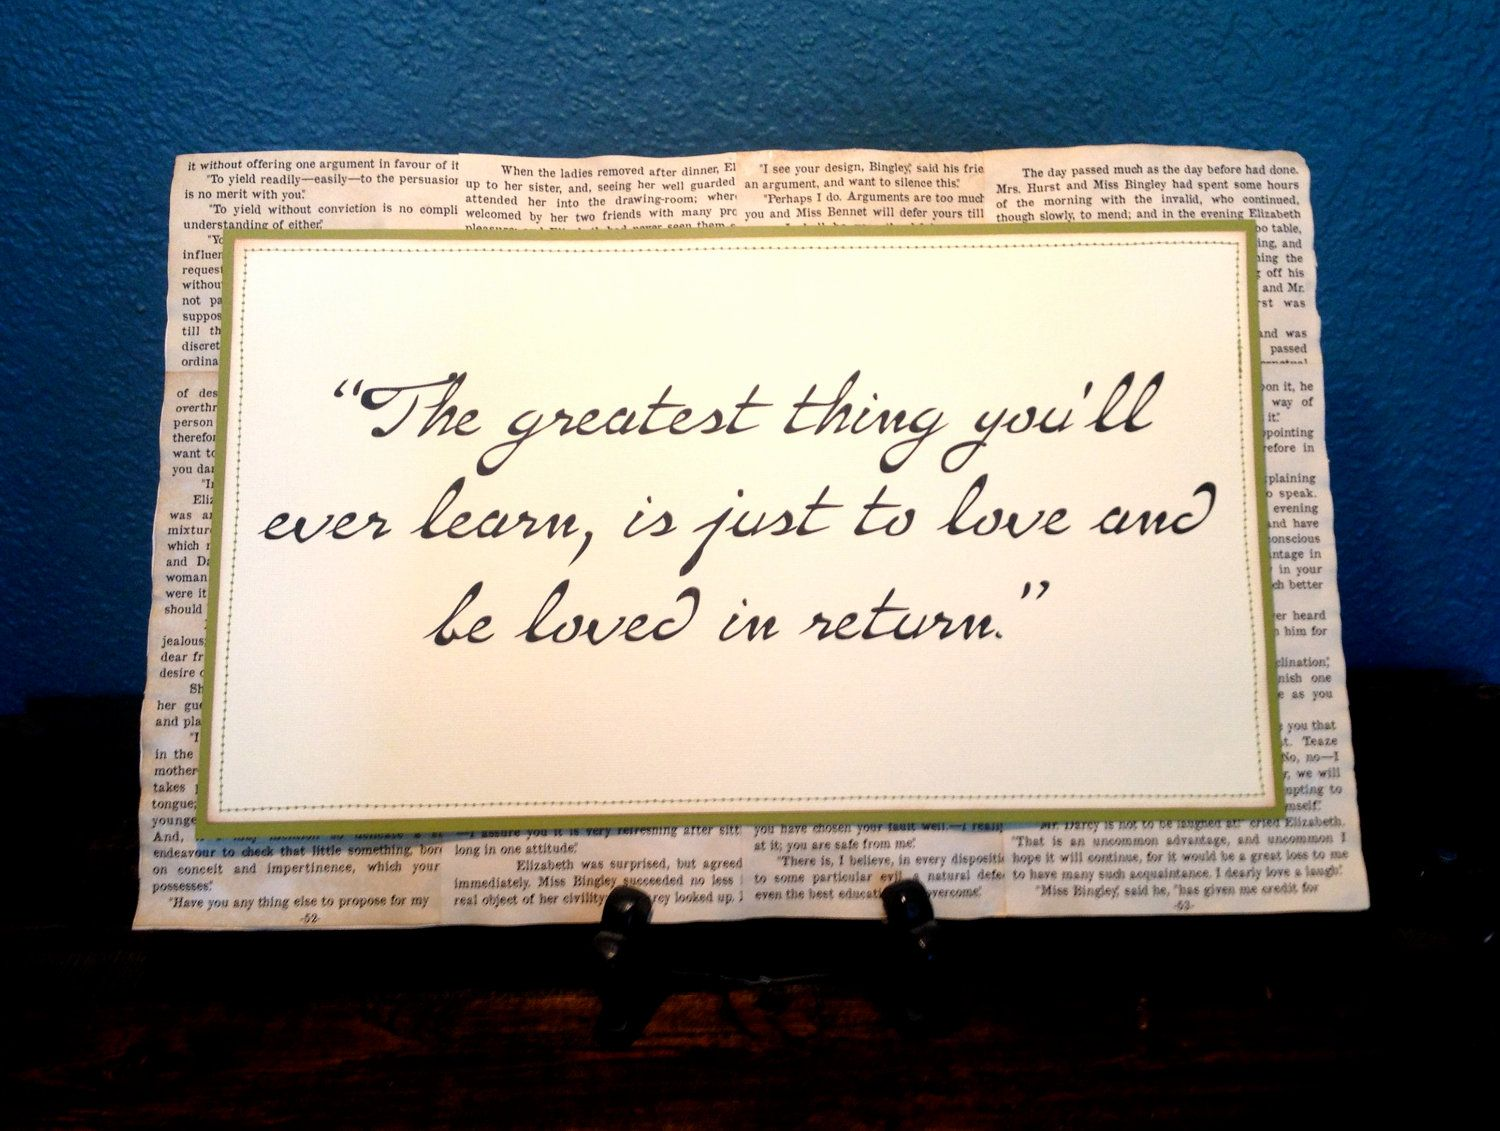 Return To Love Quotes The Greatest Thing You'll Ever Learn Is Just To Love And Be Loved